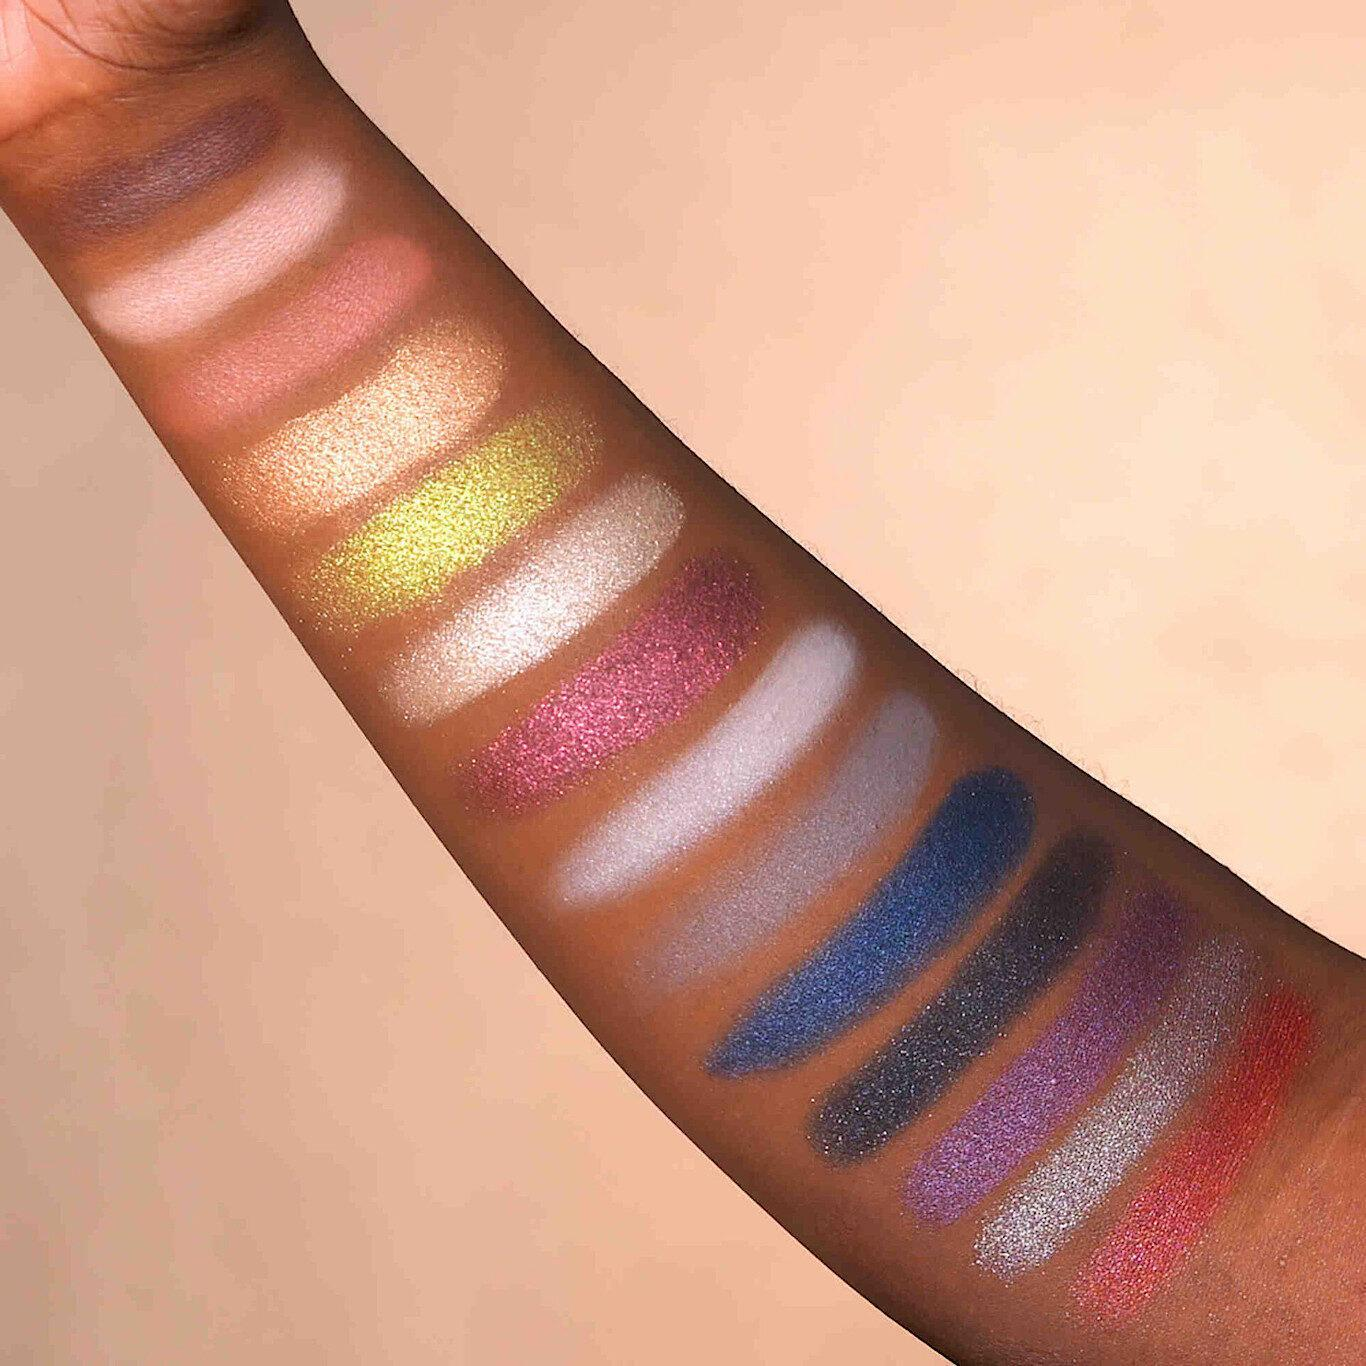 KVD Vegan Beauty Holiday Collection 2020 Edge of Reality Fully Recyclable Eyeshadow Palette Arm Swatches